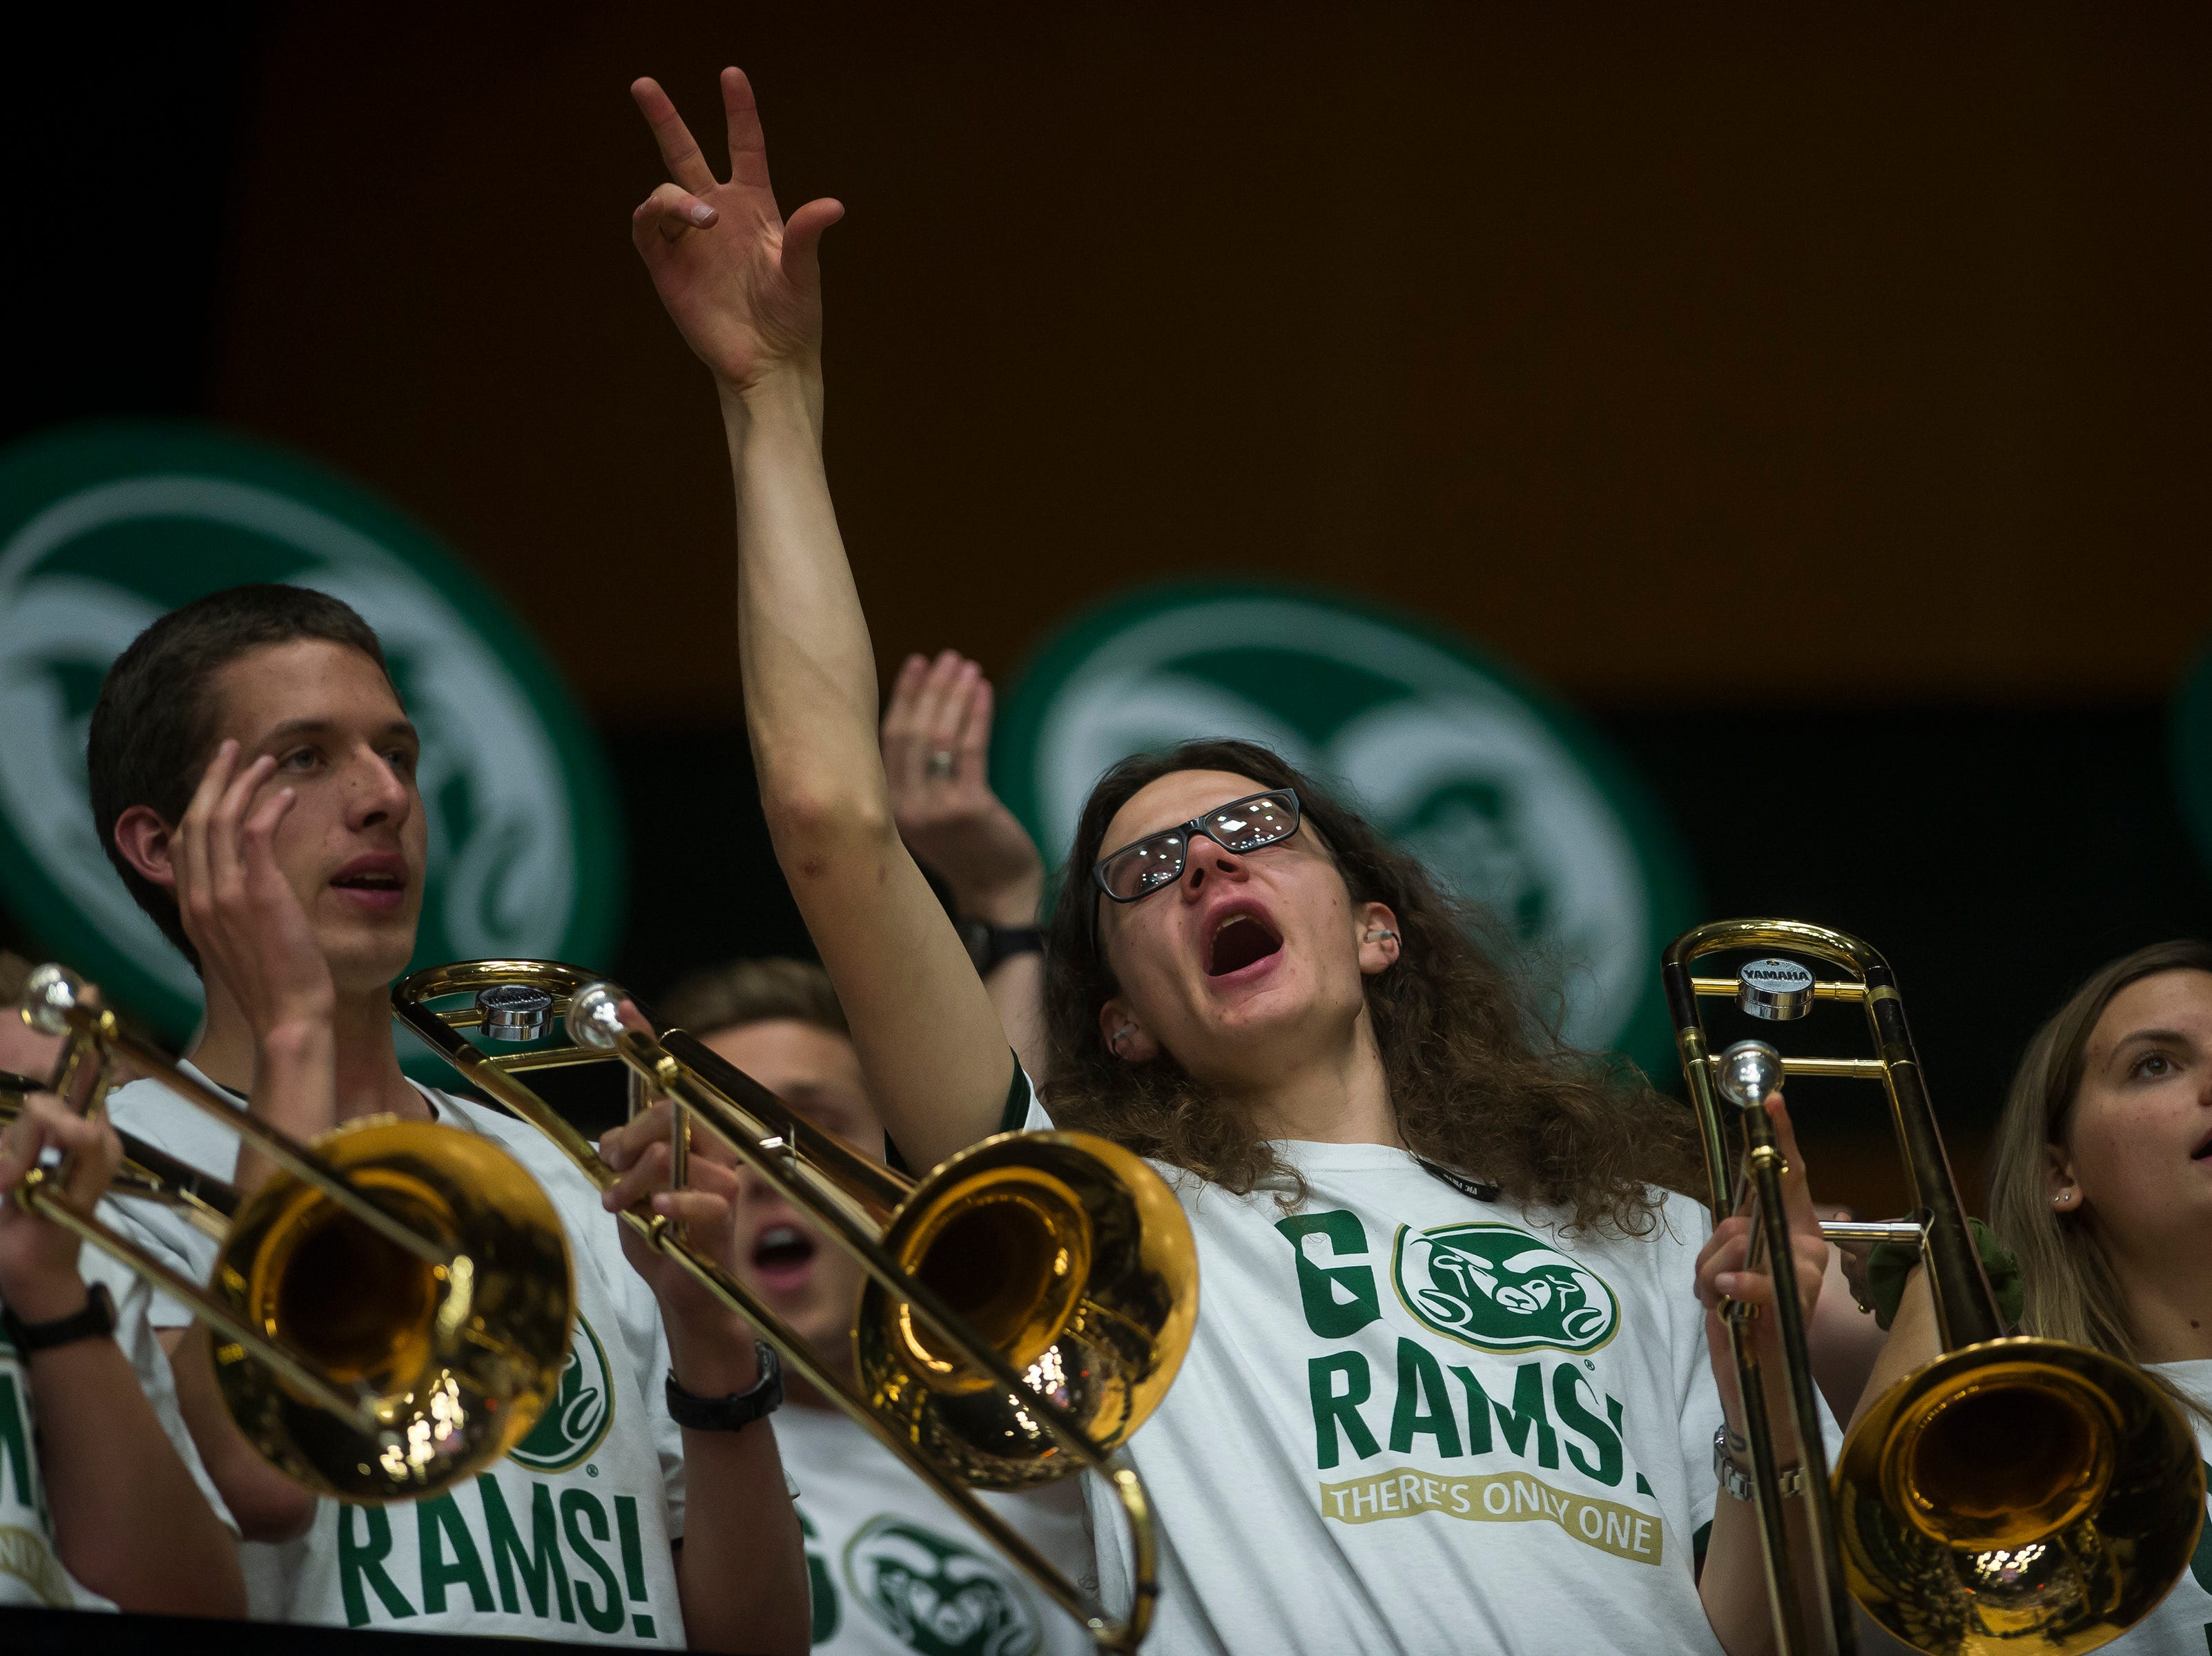 The Colorado State University band sings during a gam against Arkansas on Wednesday, Dec. 5, 2018, Moby Arena in Fort Collins, Colo.